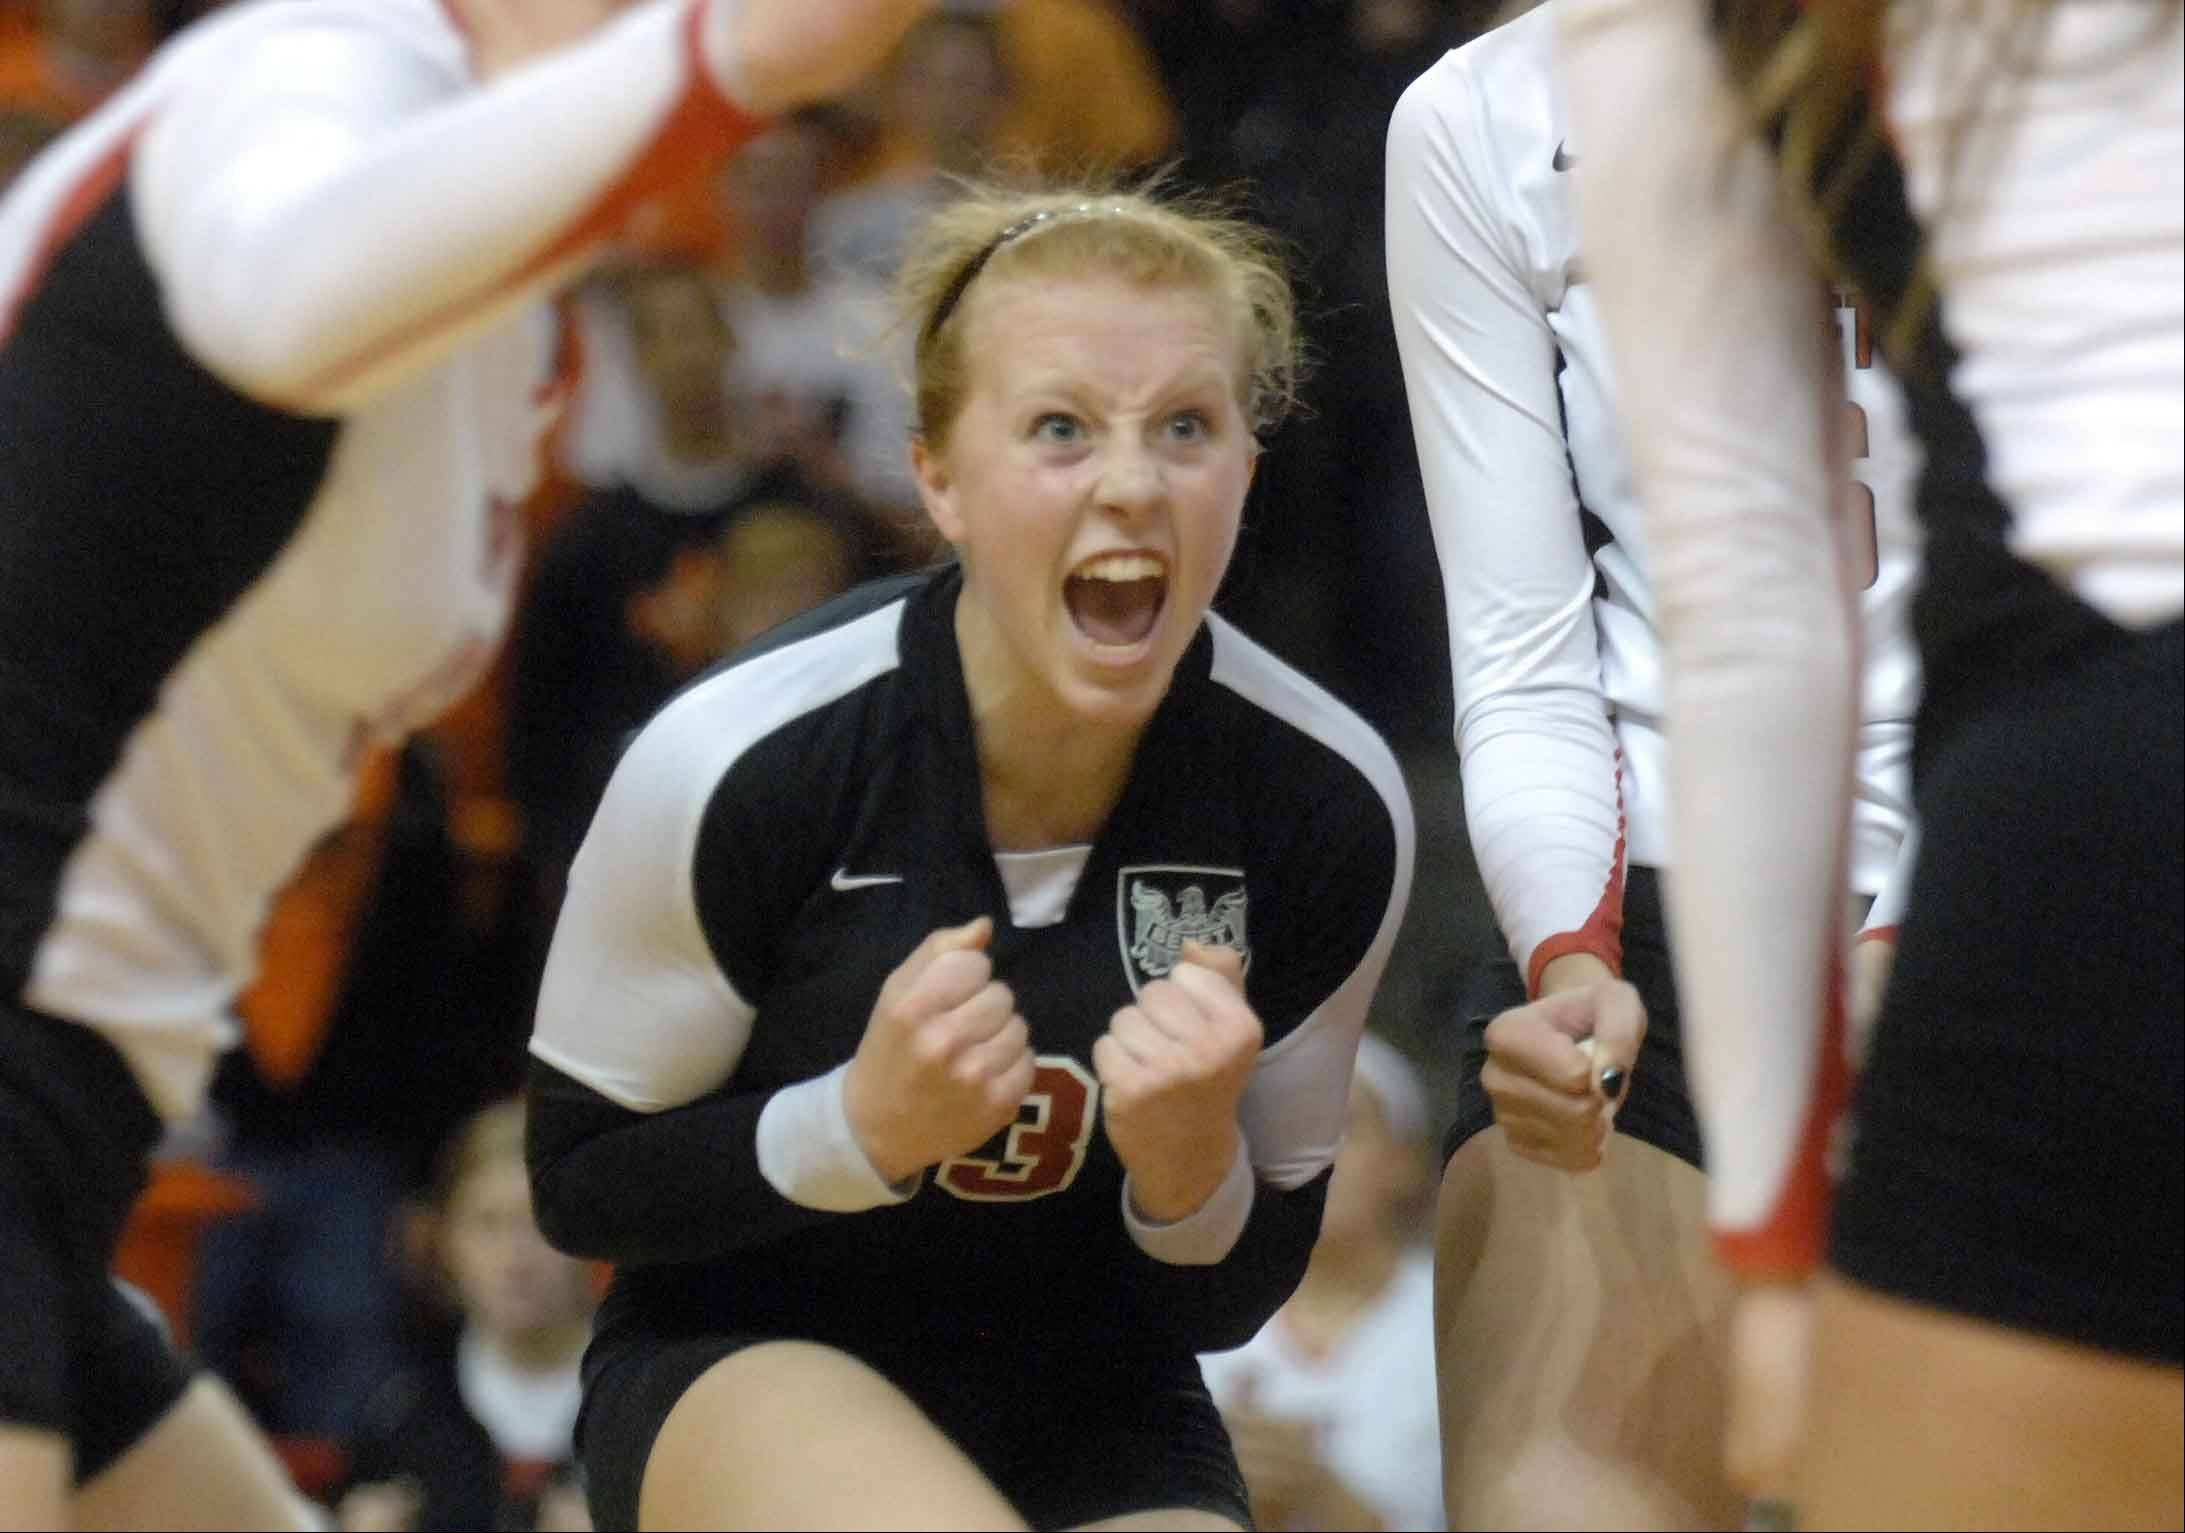 Shelia Doyle of Benet lets out a yell during the sBenet vs. St. Charles East girls tate volleyball 4A semifinal Friday in Normal.